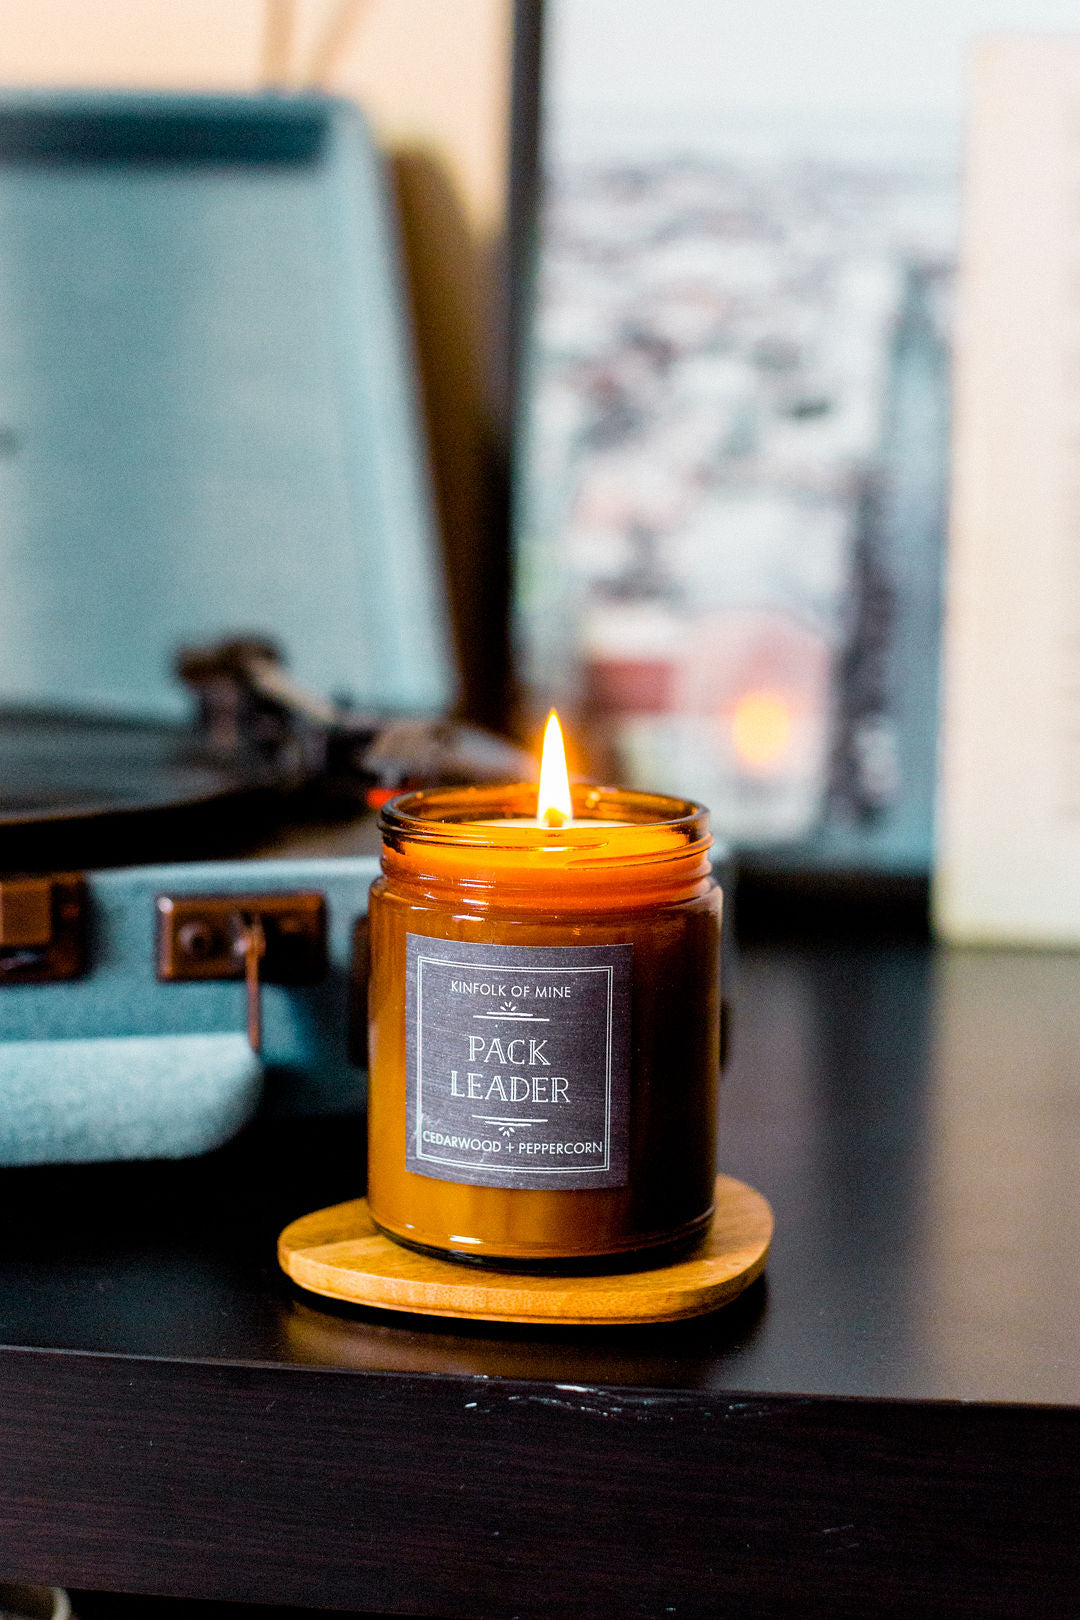 Pack Leader 9oz Candle